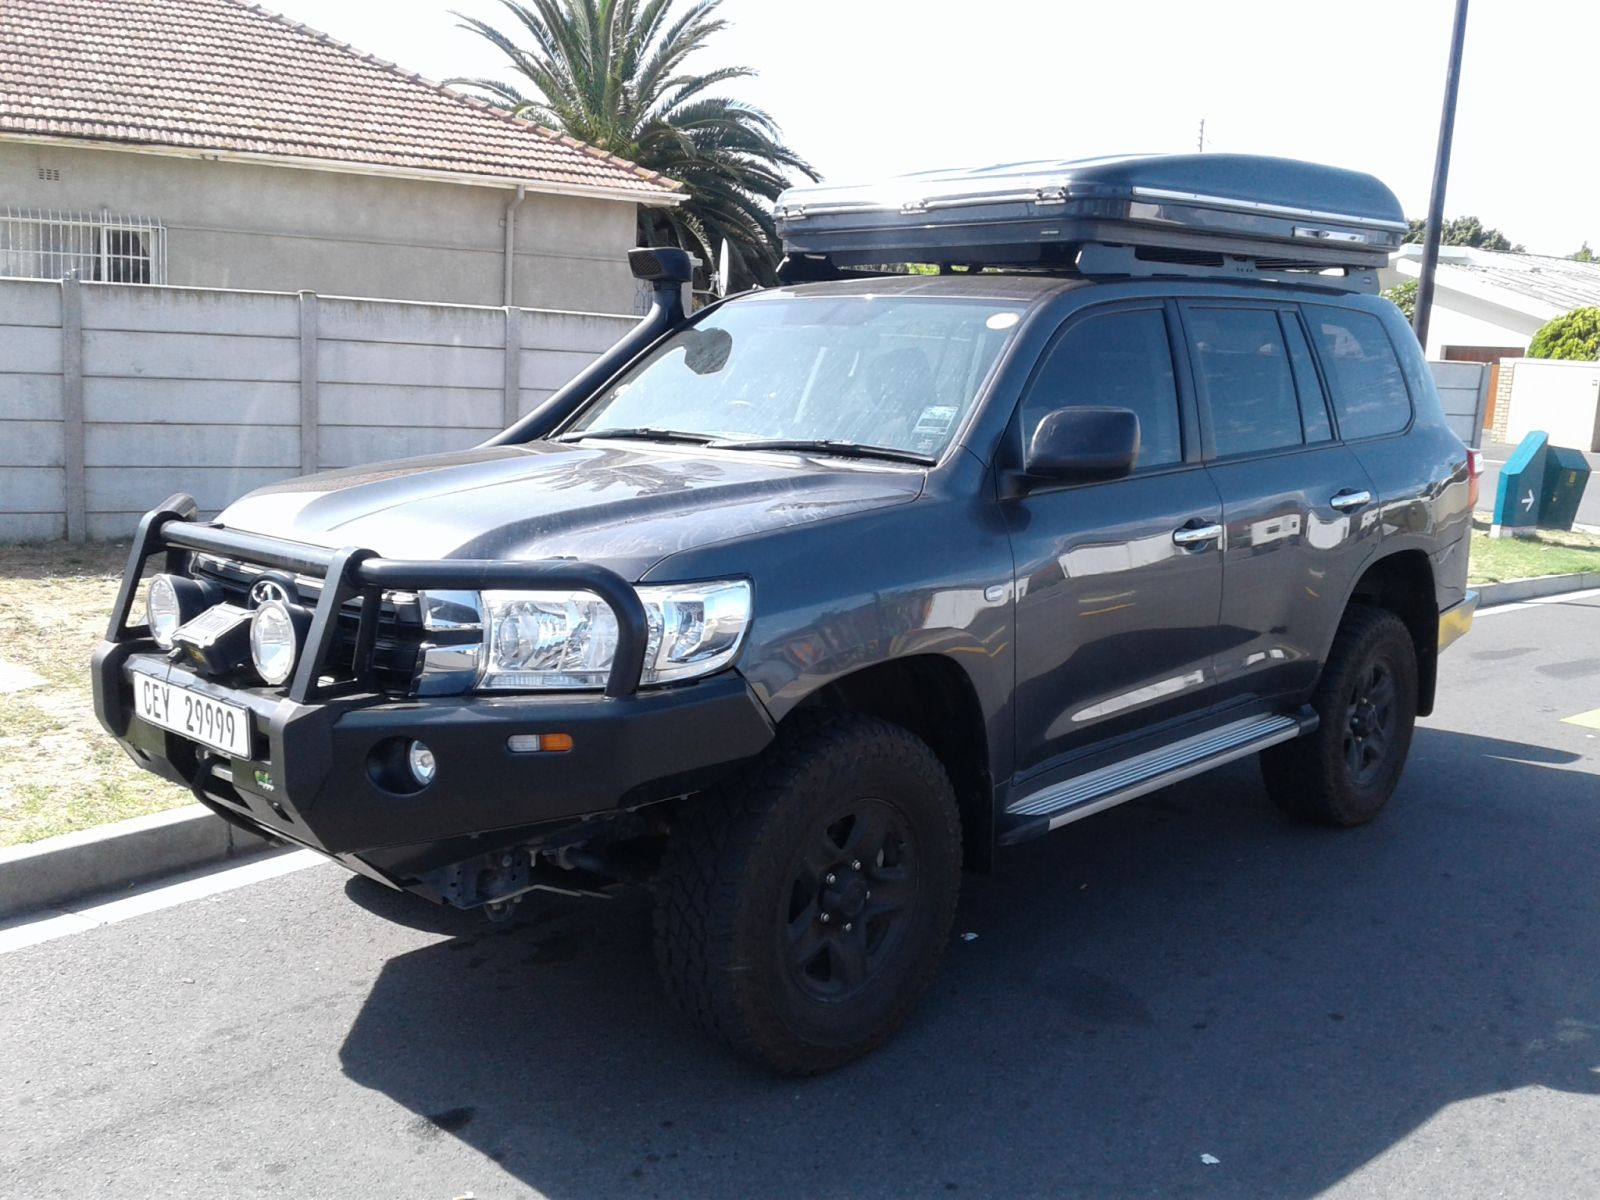 2019 TOYOTA LAND CRUISER 200 4.5D GX-R AT LAND CRUISER 200 4.5D GX-R AT